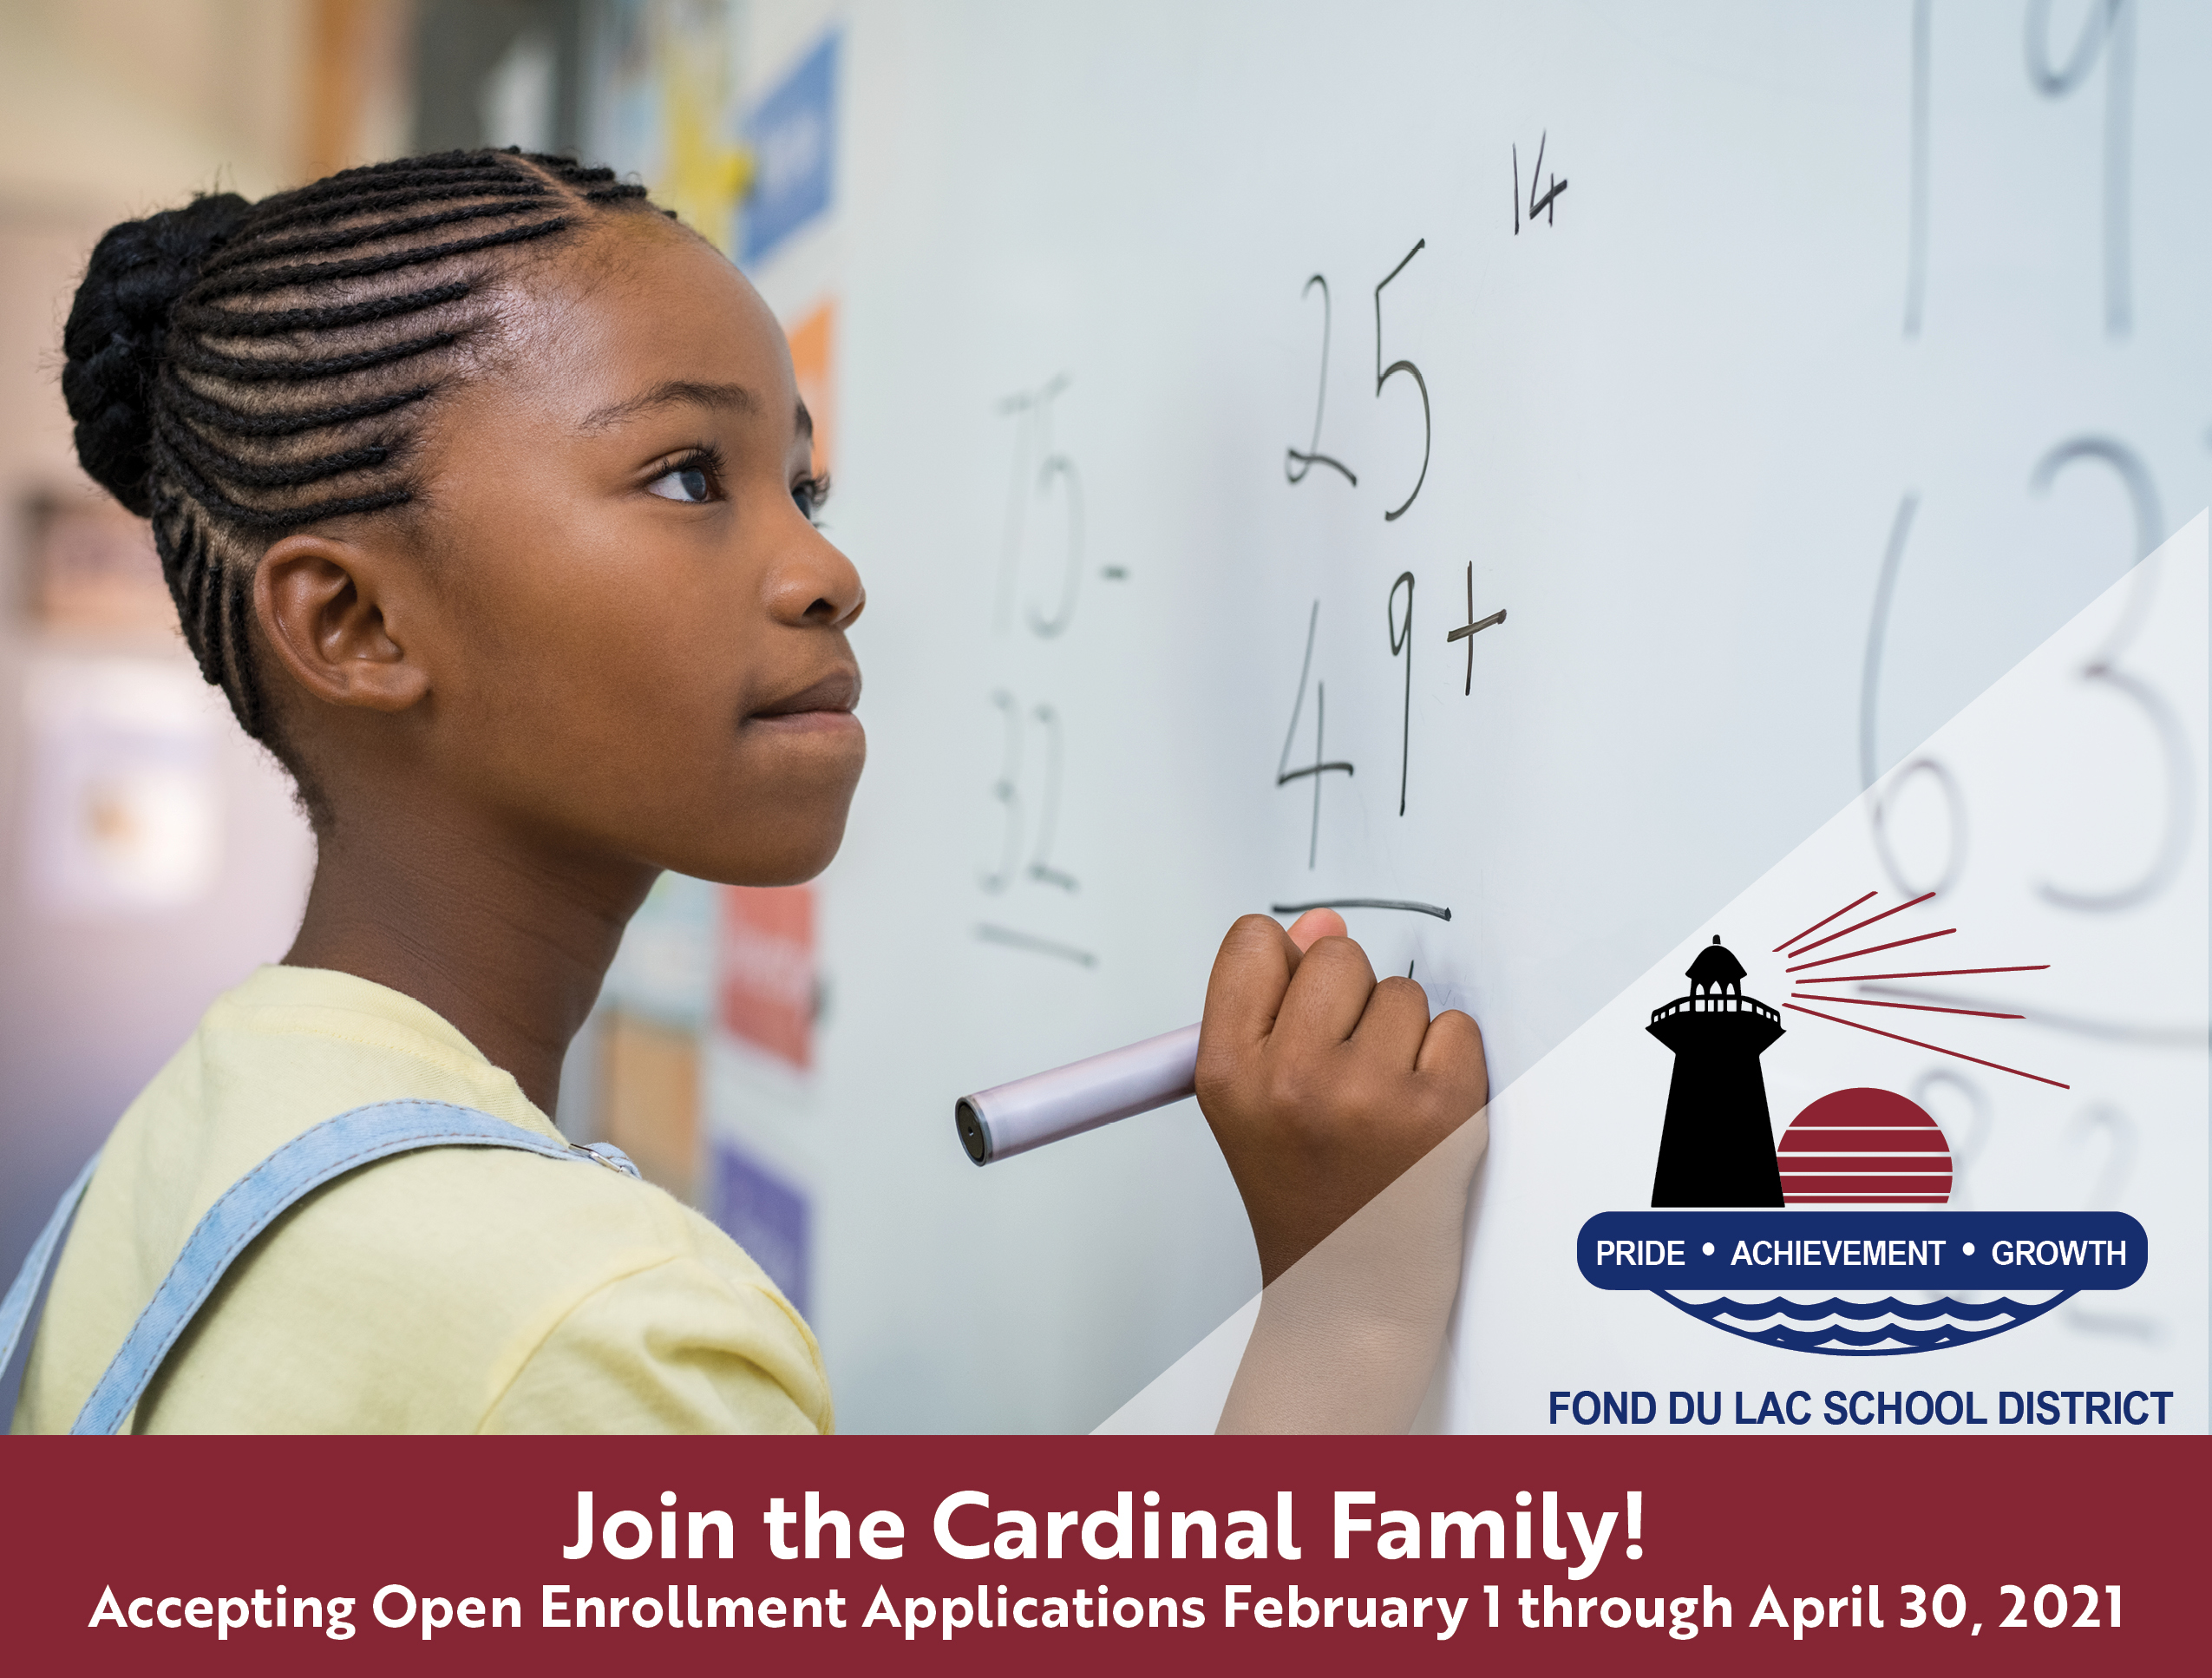 Student doing math, Join the Cardinal Family, deadlines for open enrollment